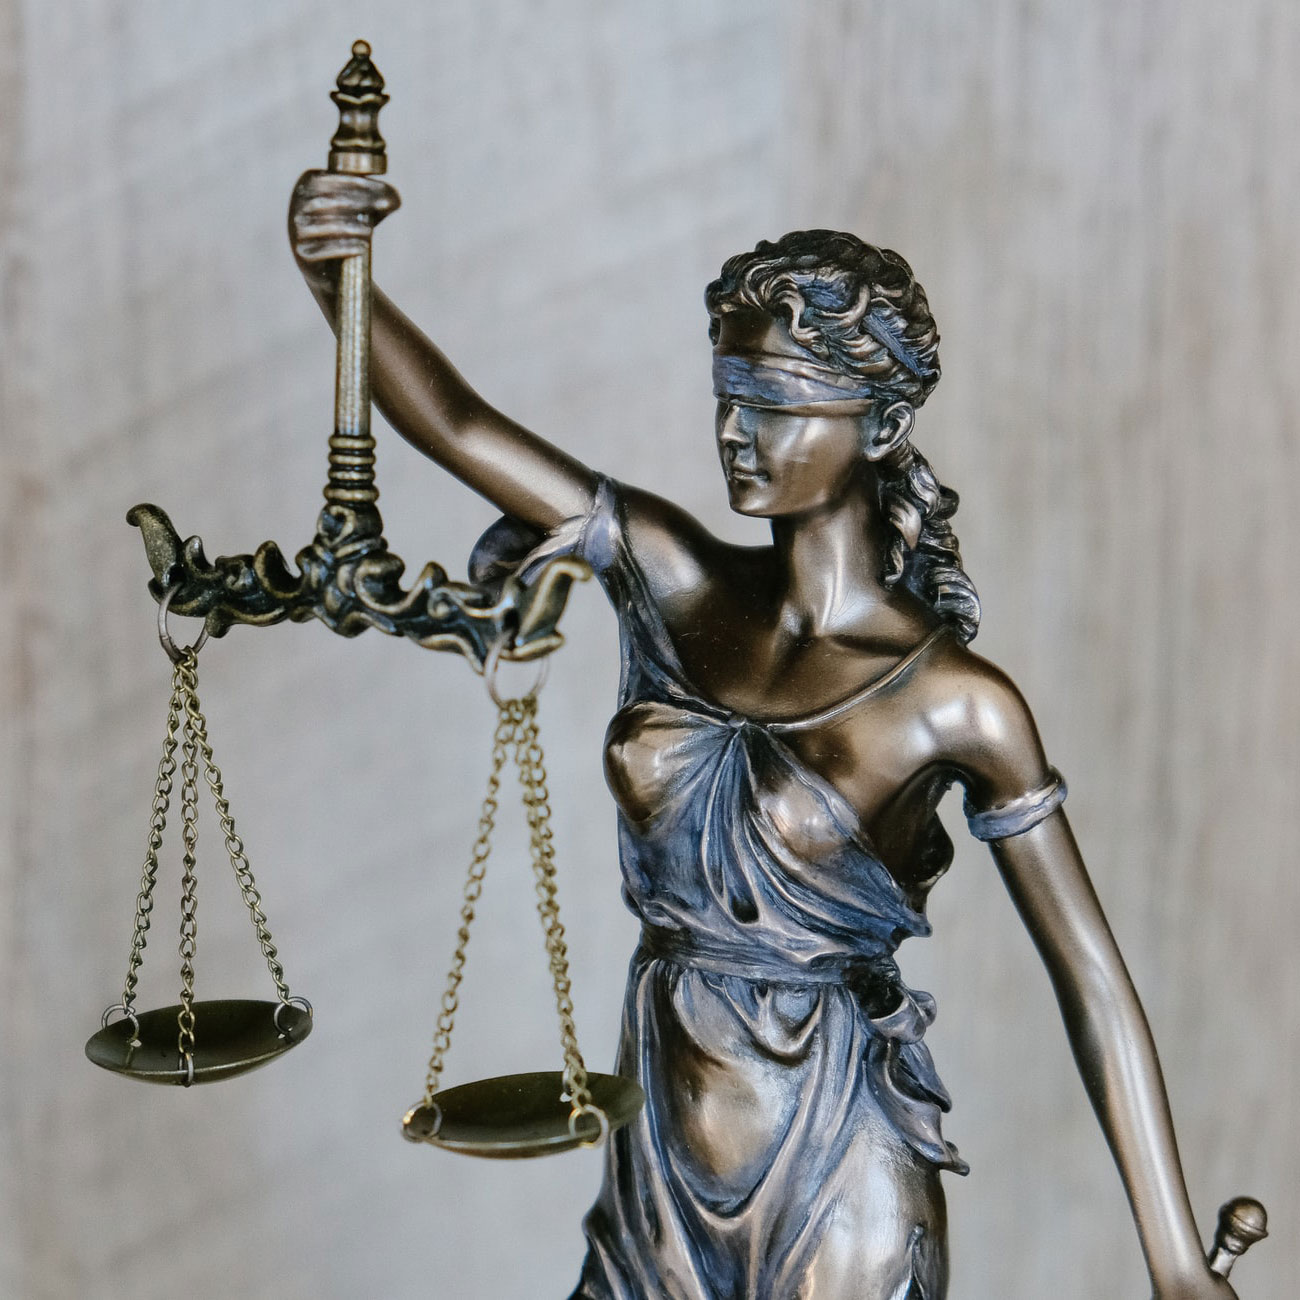 Statue of blind justice holding the scales of justice.